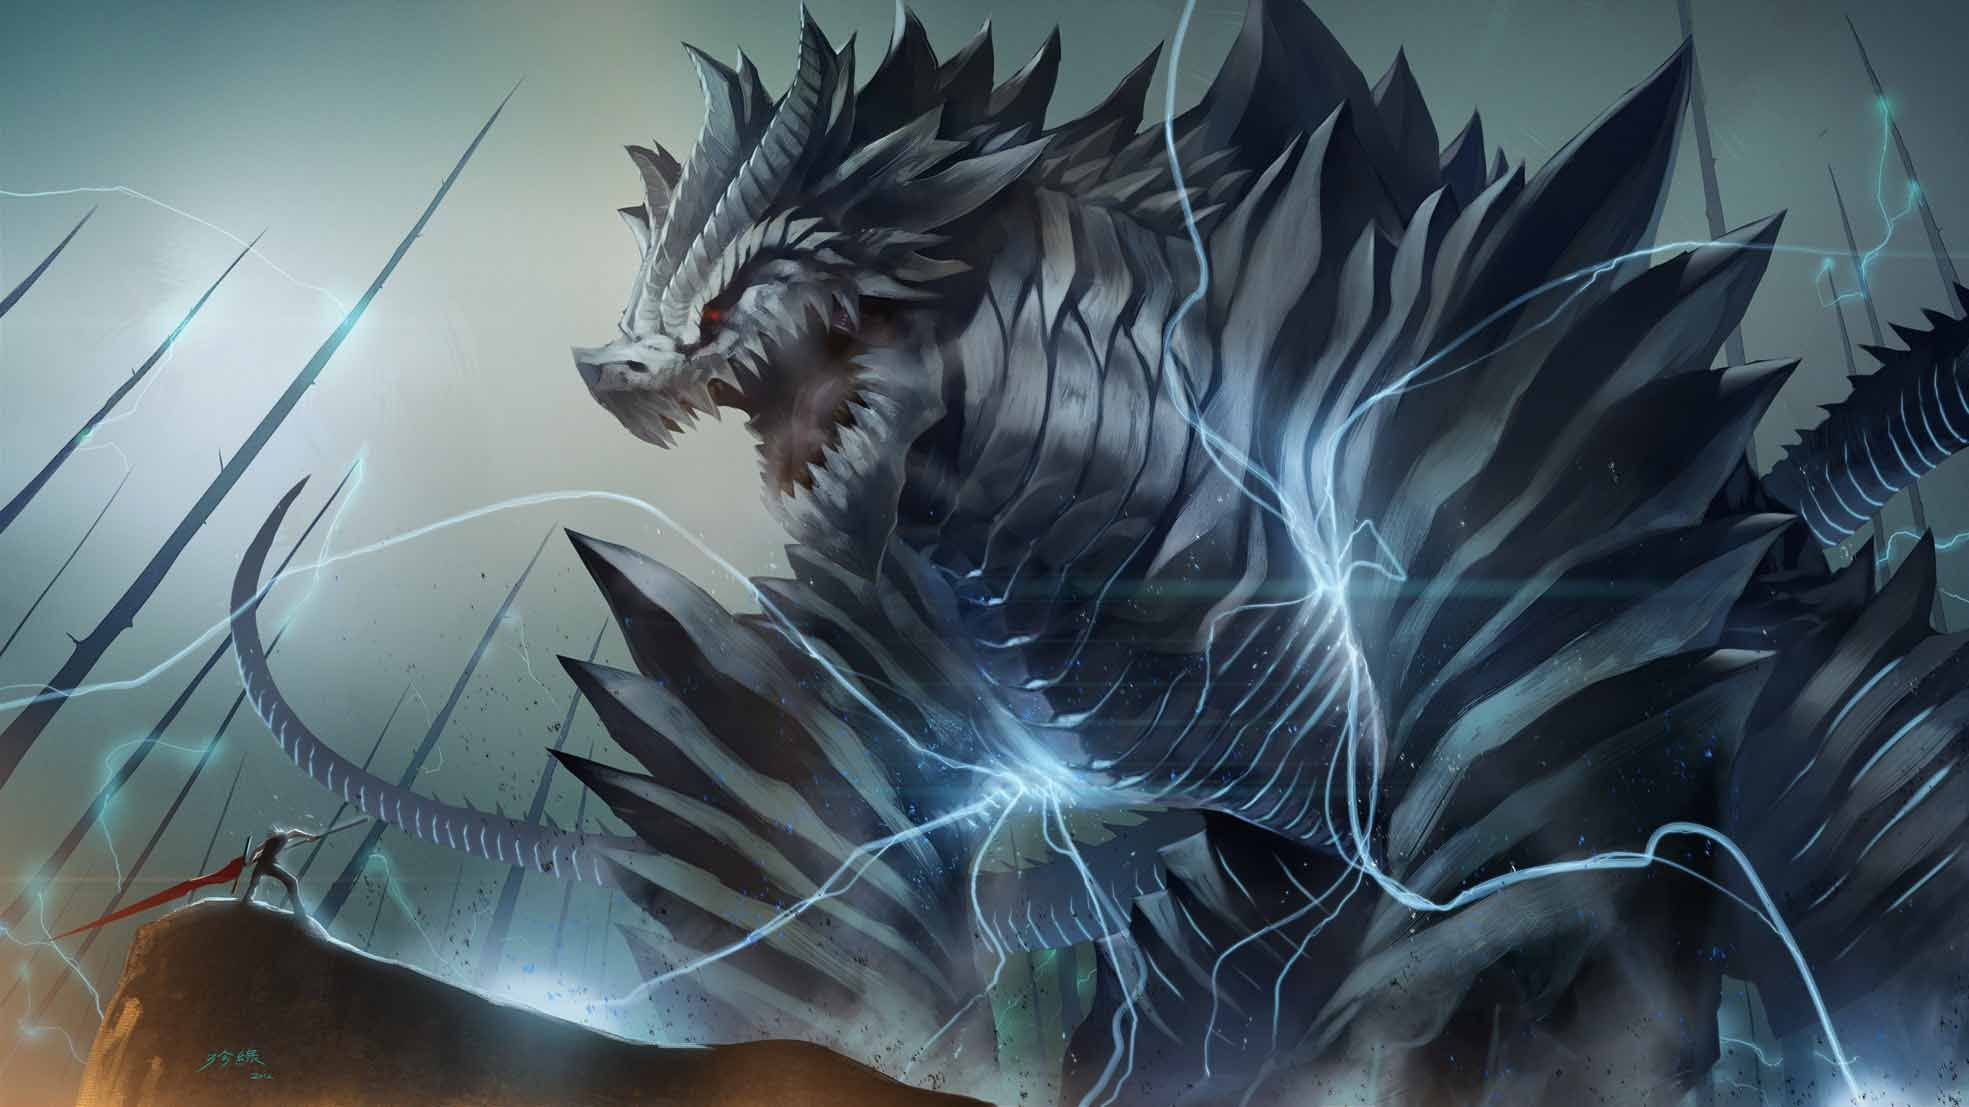 Lightning Dragon Wallpapers Top Free Lightning Dragon Backgrounds Wallpaperaccess